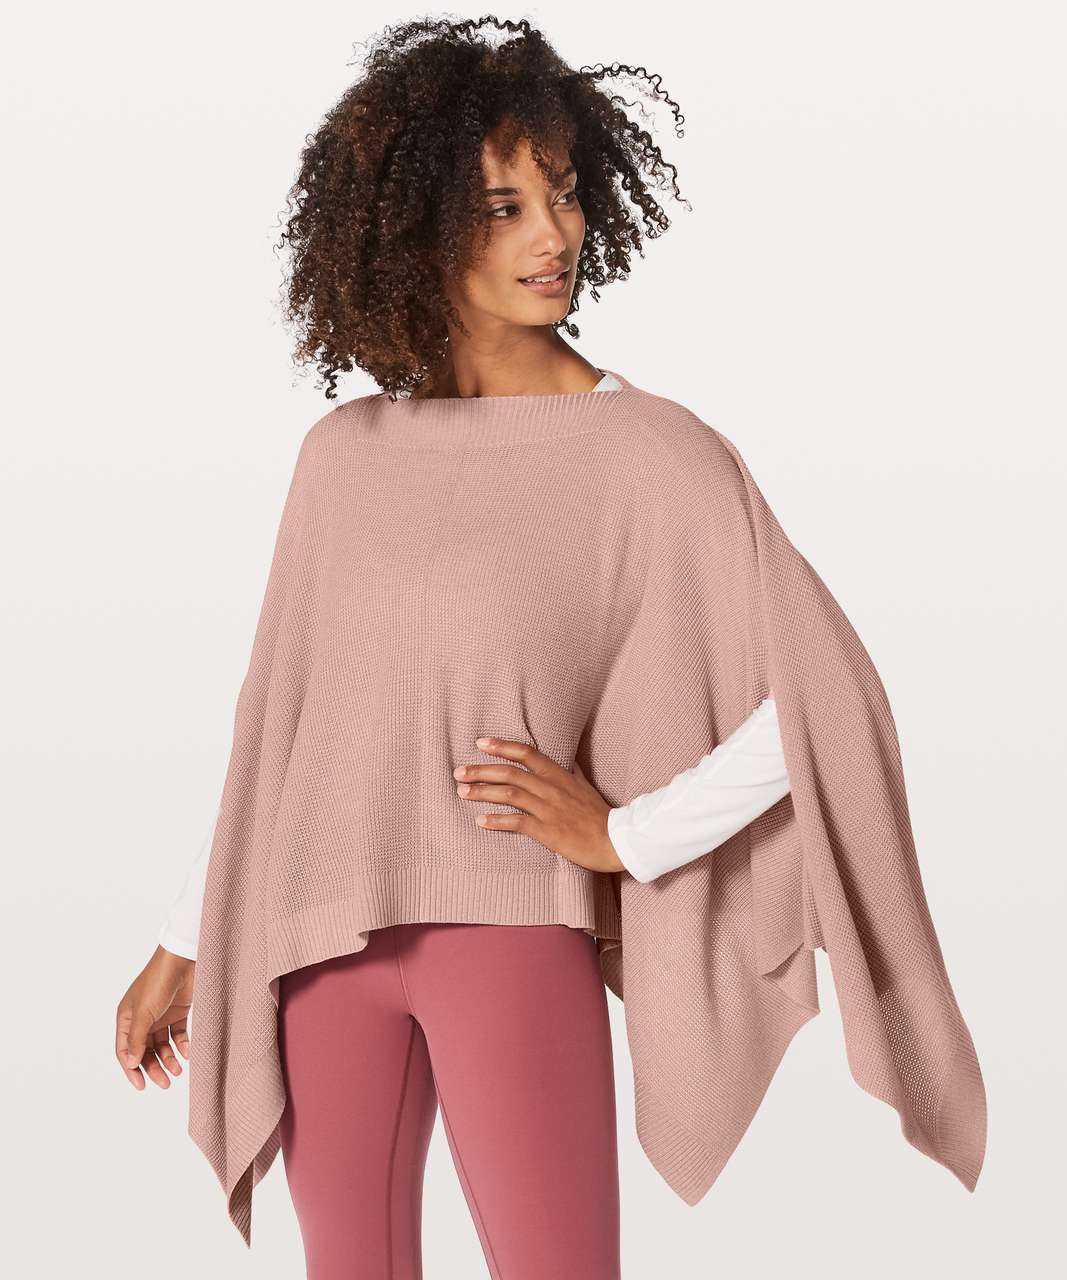 Lululemon Forward Flow Cape - Heathered Mink Berry